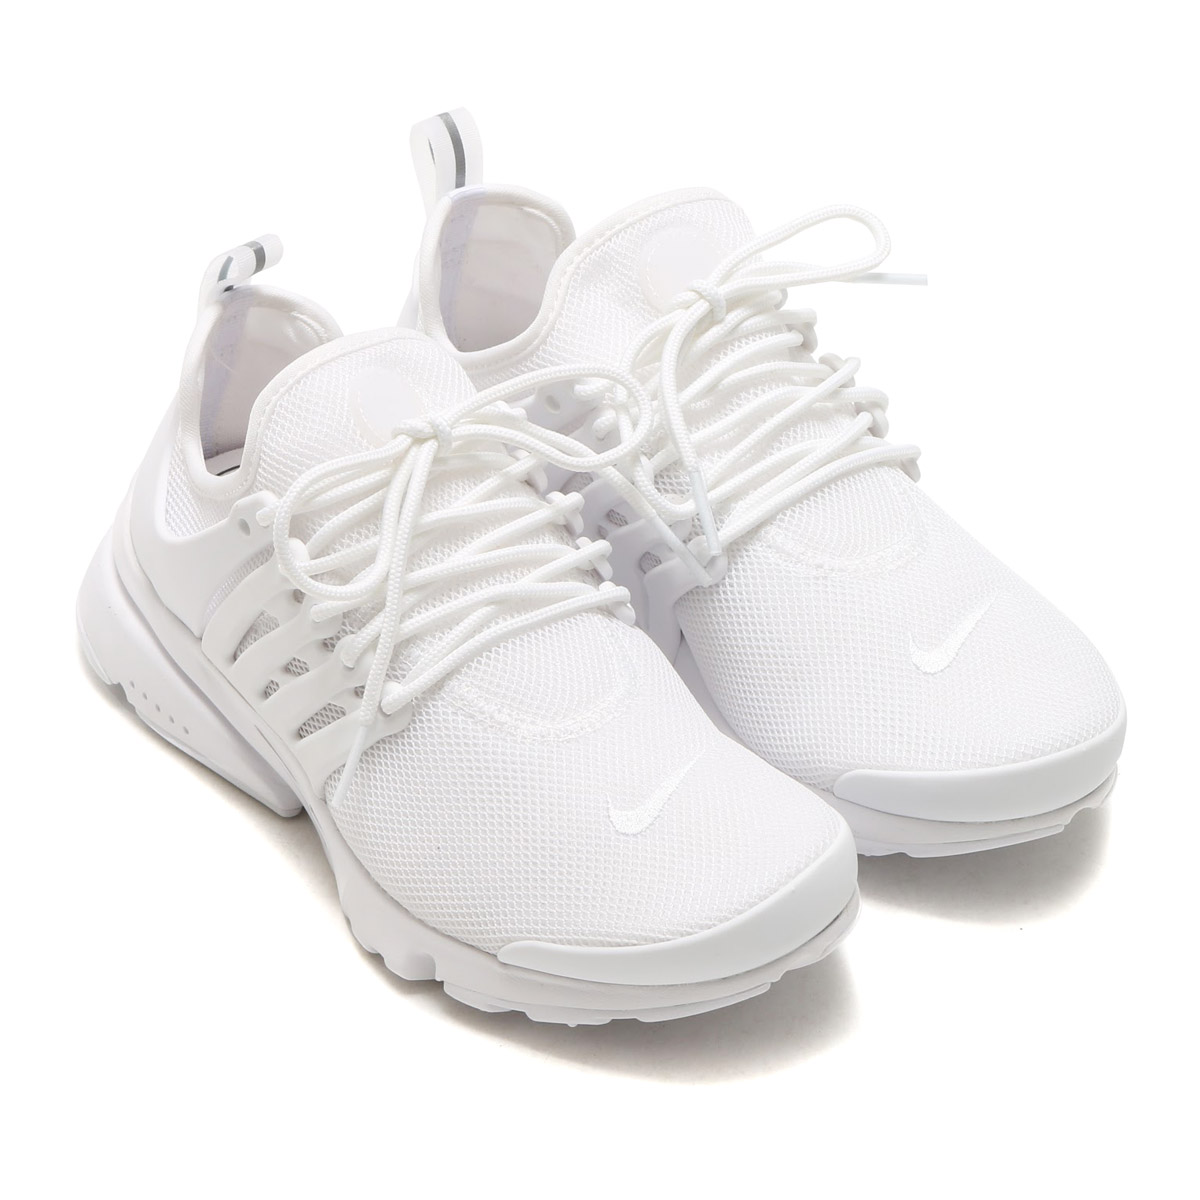 100% authentic 5b331 5c8e8 IP mid sole. The IP out sole which I arranged a rubber traction pod for.  リエンジニアードバージョン of the running shoes which I arranged for casual wear.